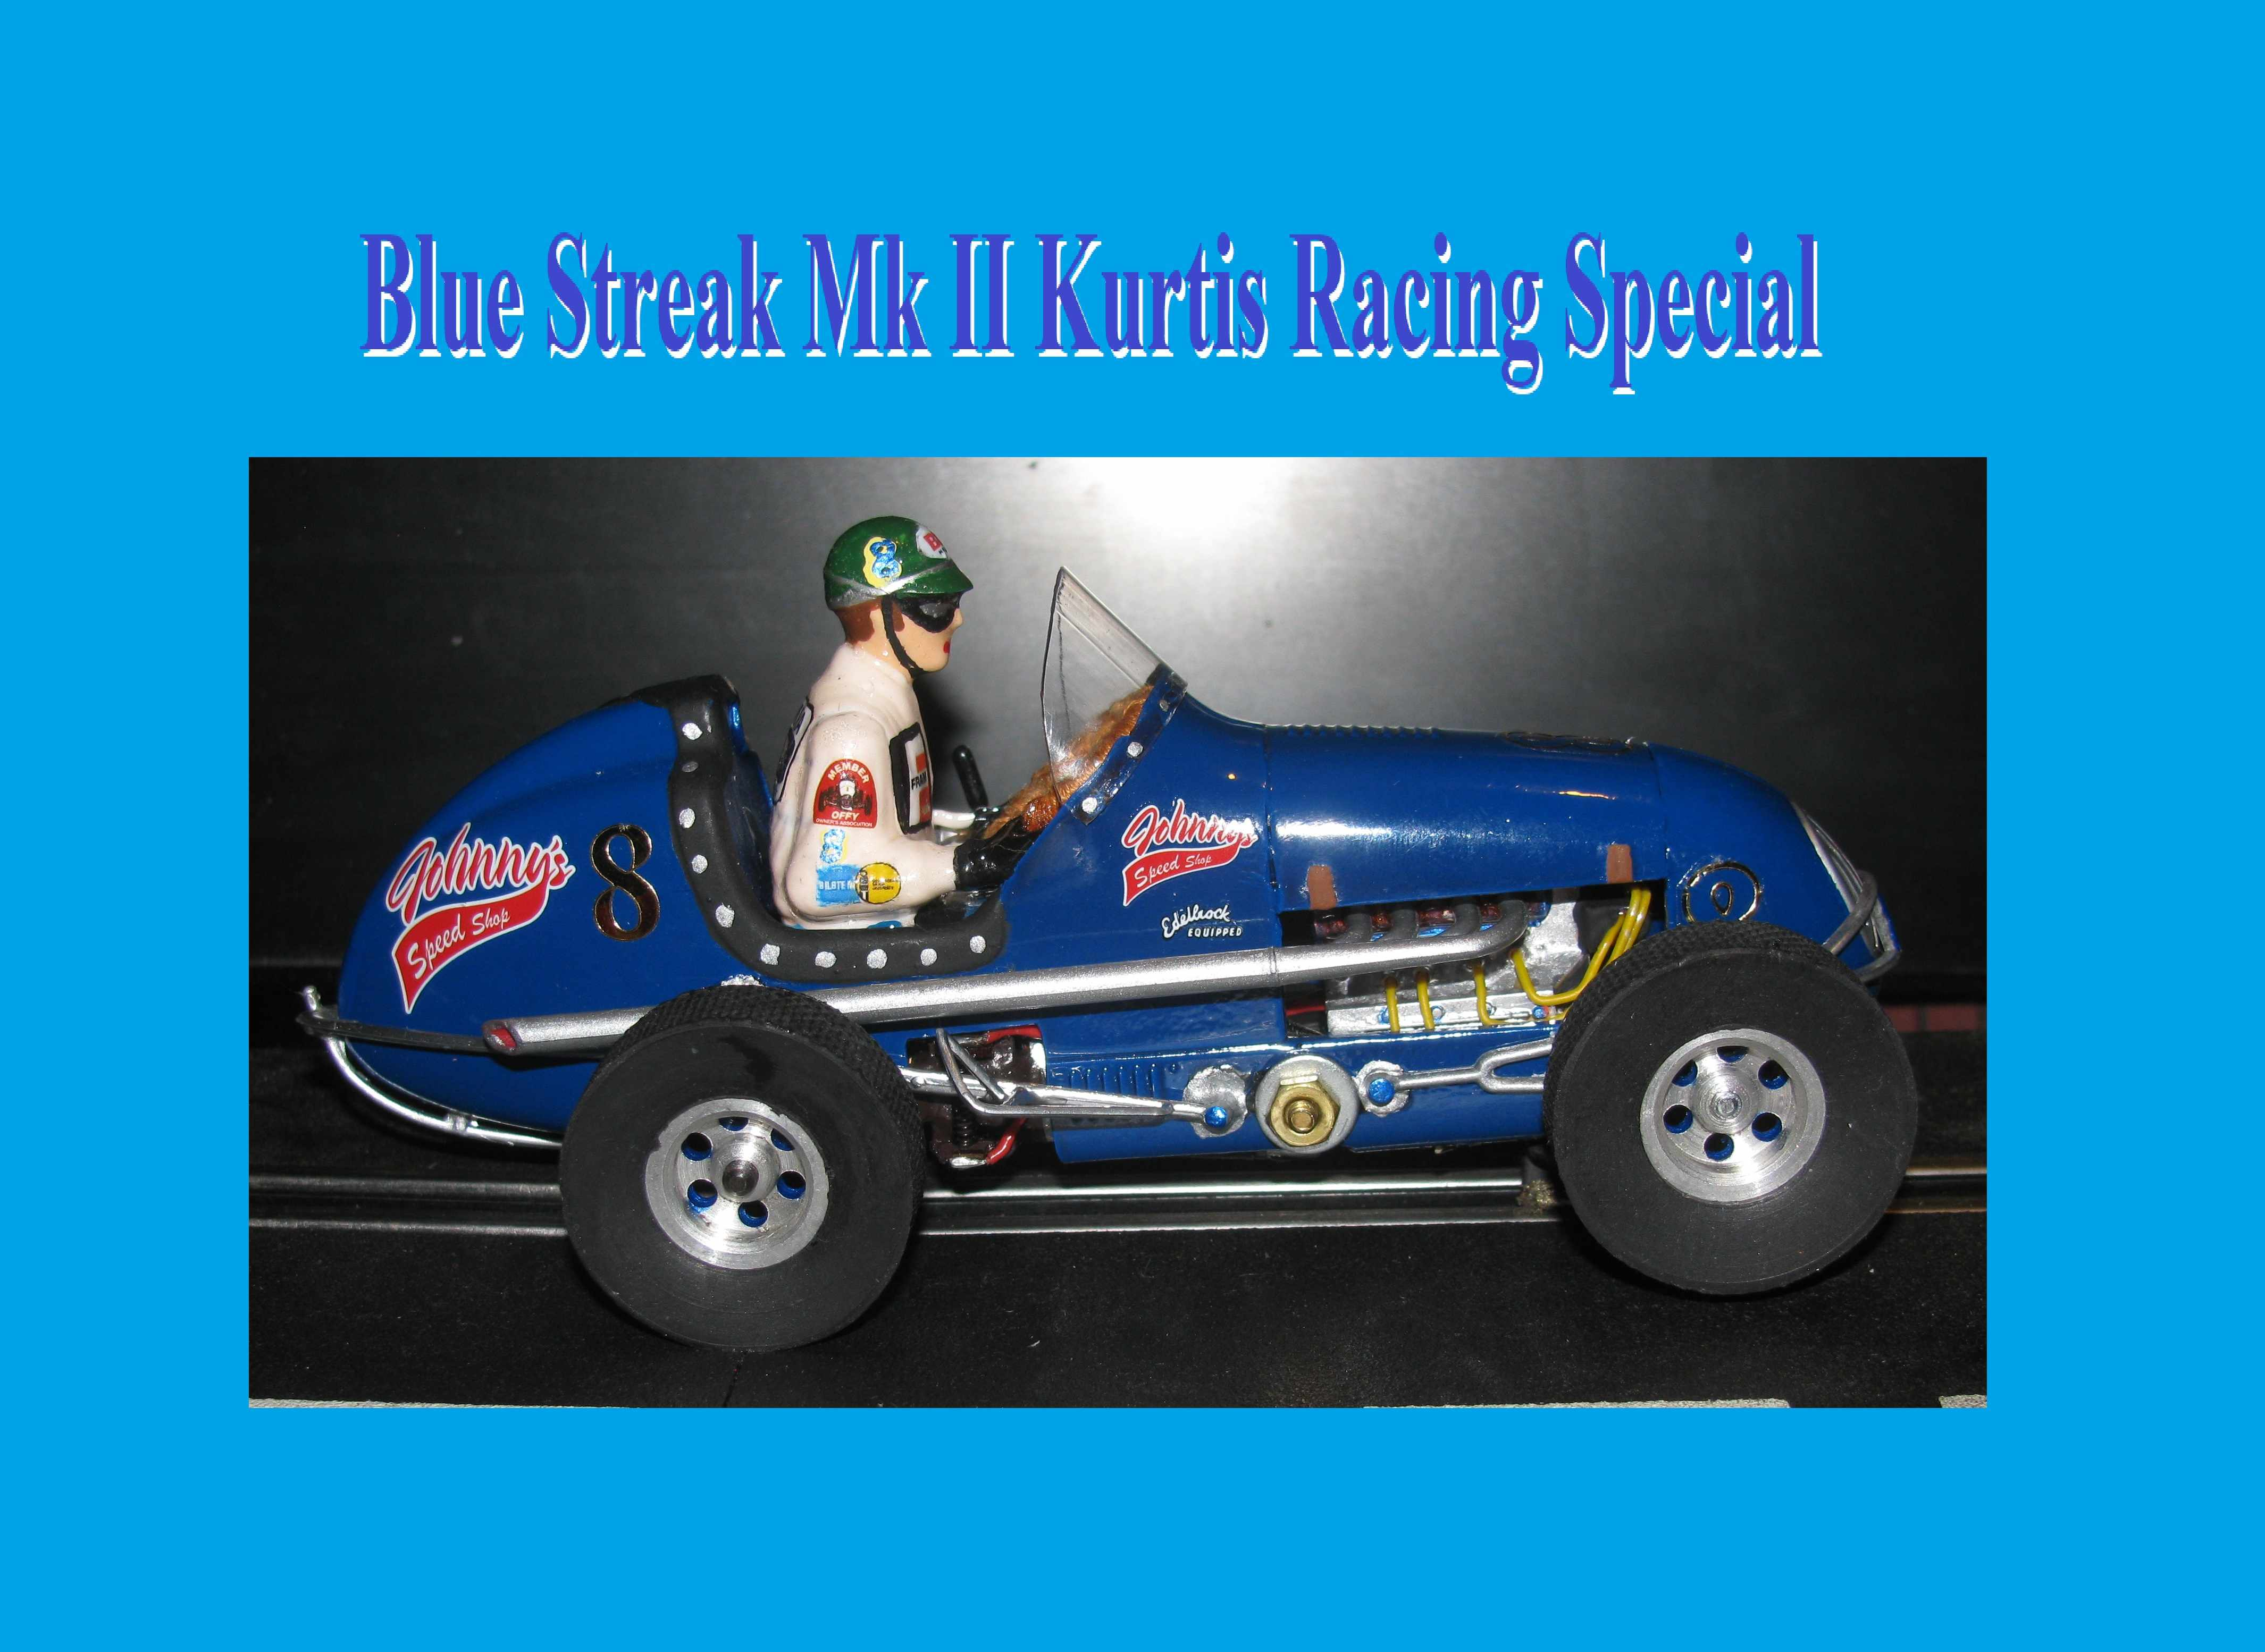 *SOLD* Midget Racer Blue Streak Mk II Kurtis Racing Special Slot Car 1:24 Scale Car #8